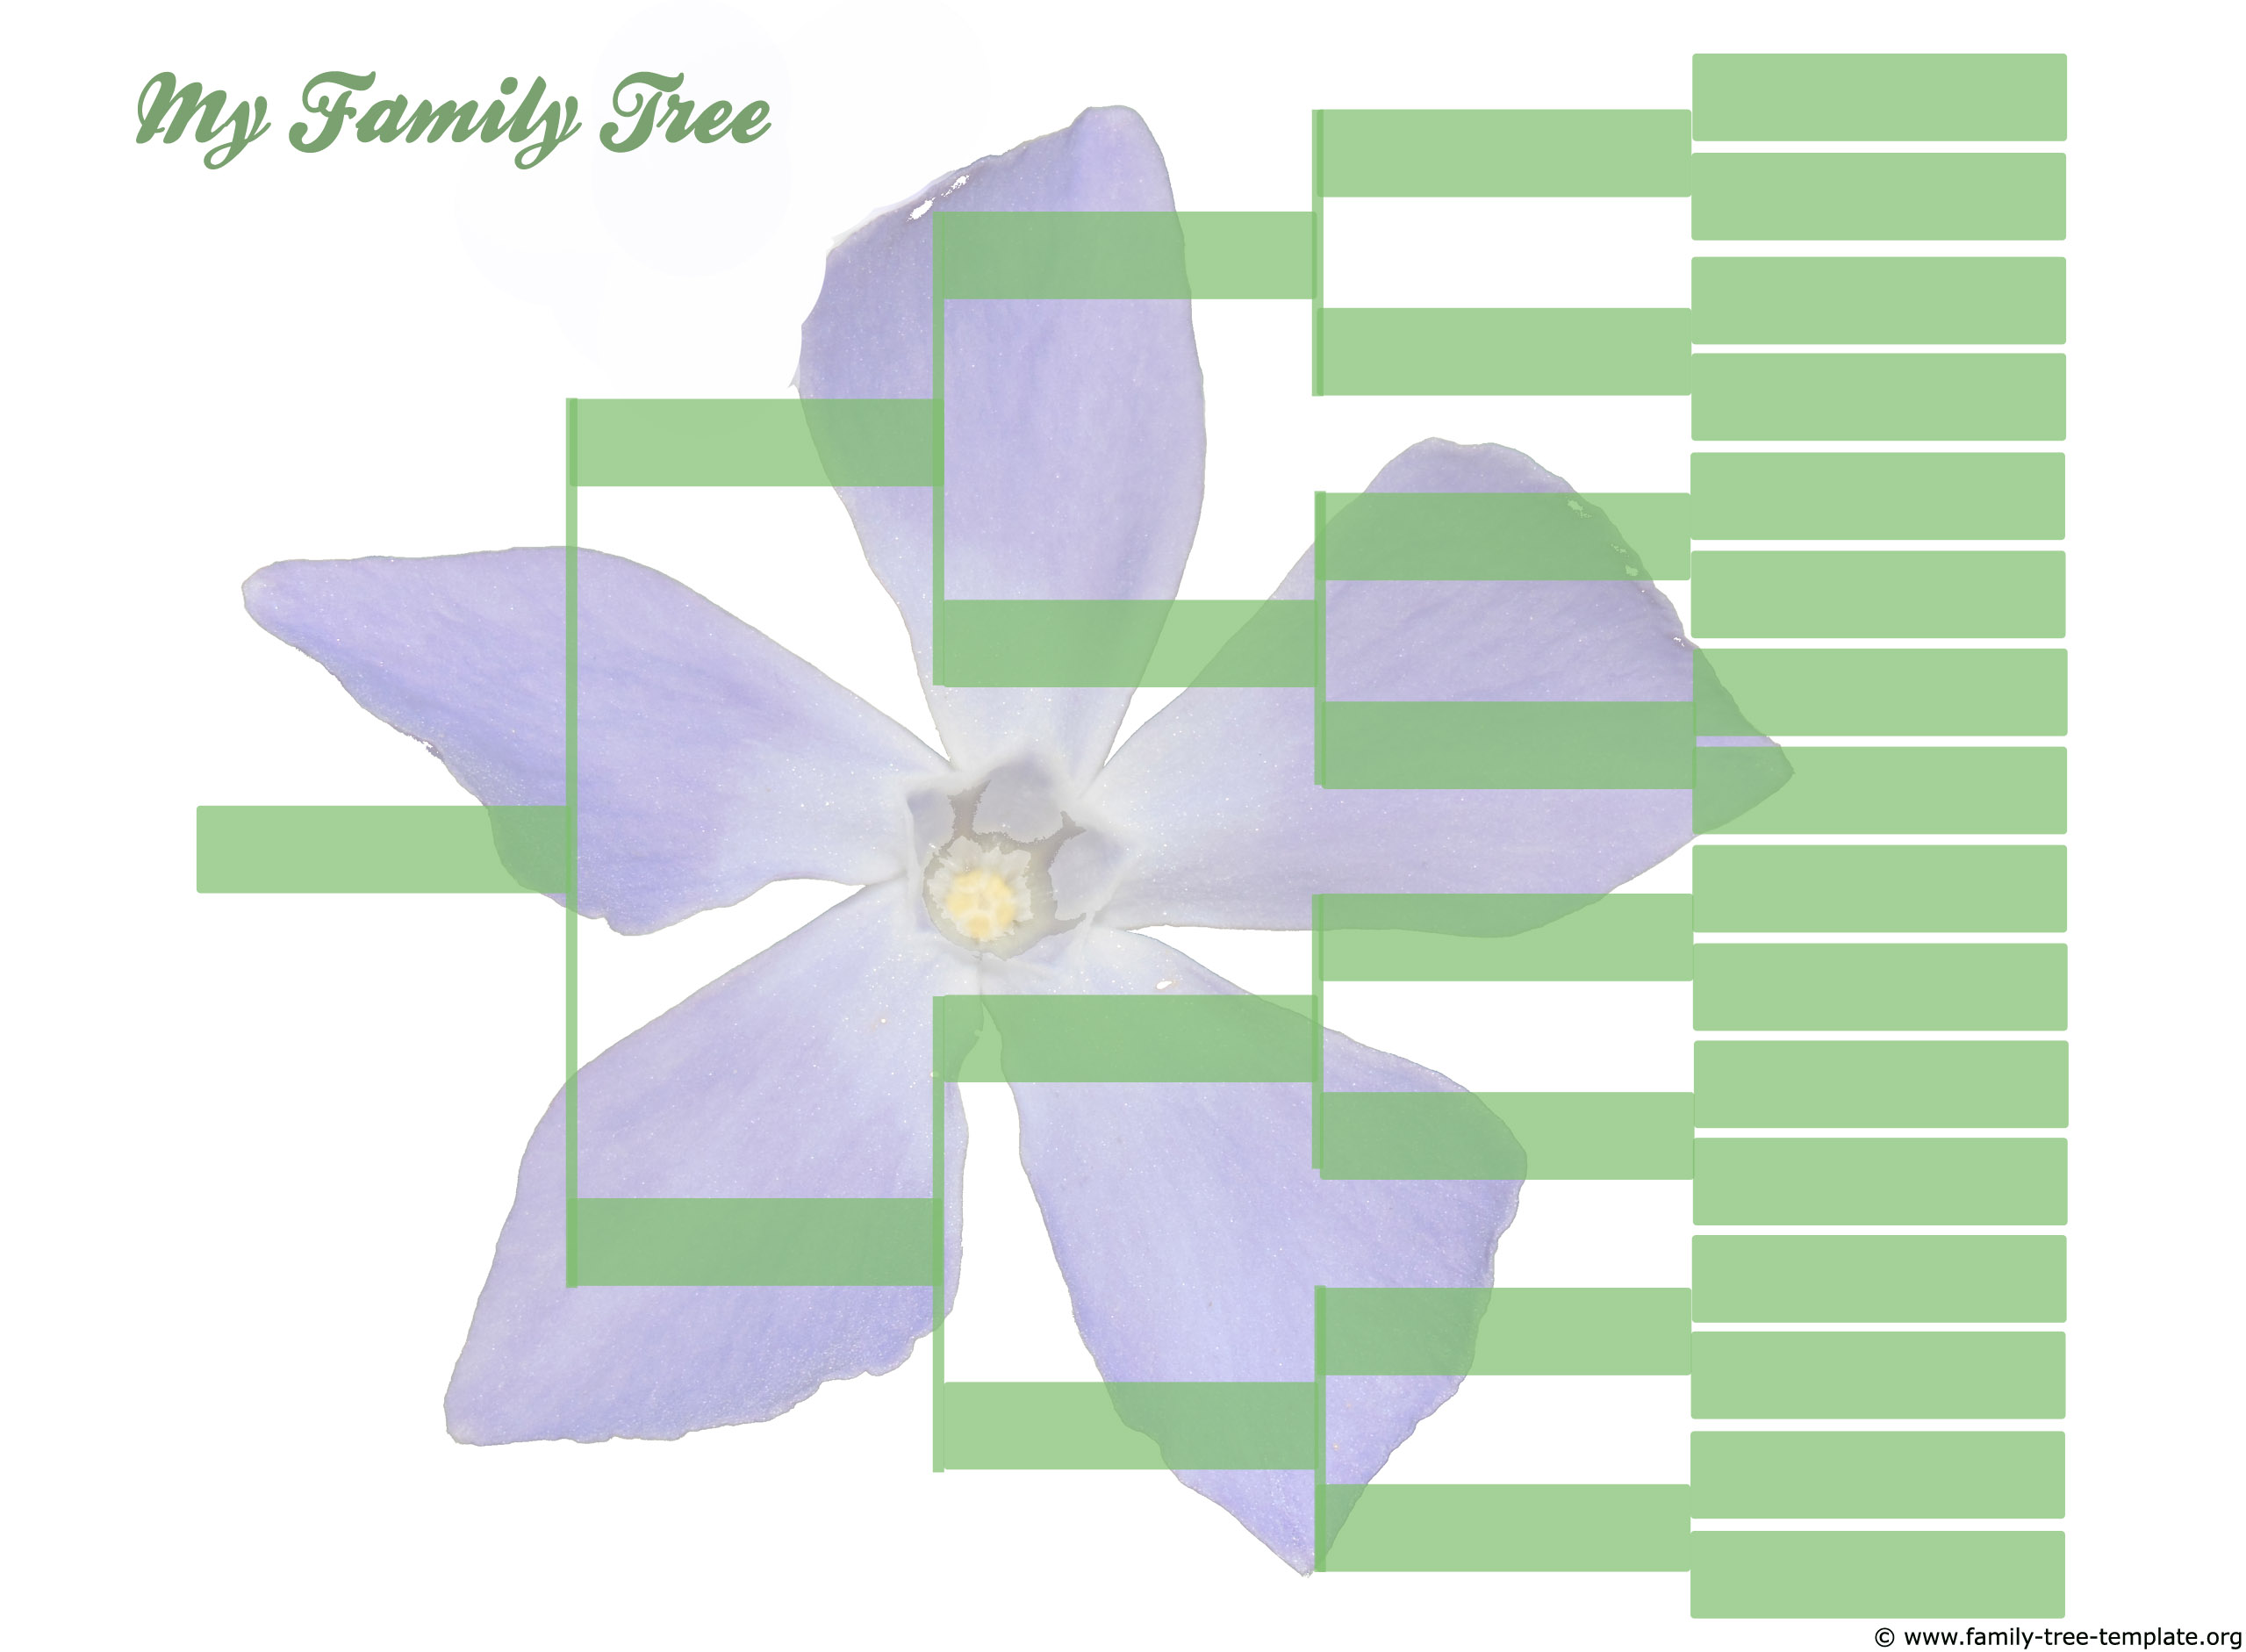 Family tree template for kids printable genealogy charts ancestry chart going back to great great grandparents saigontimesfo